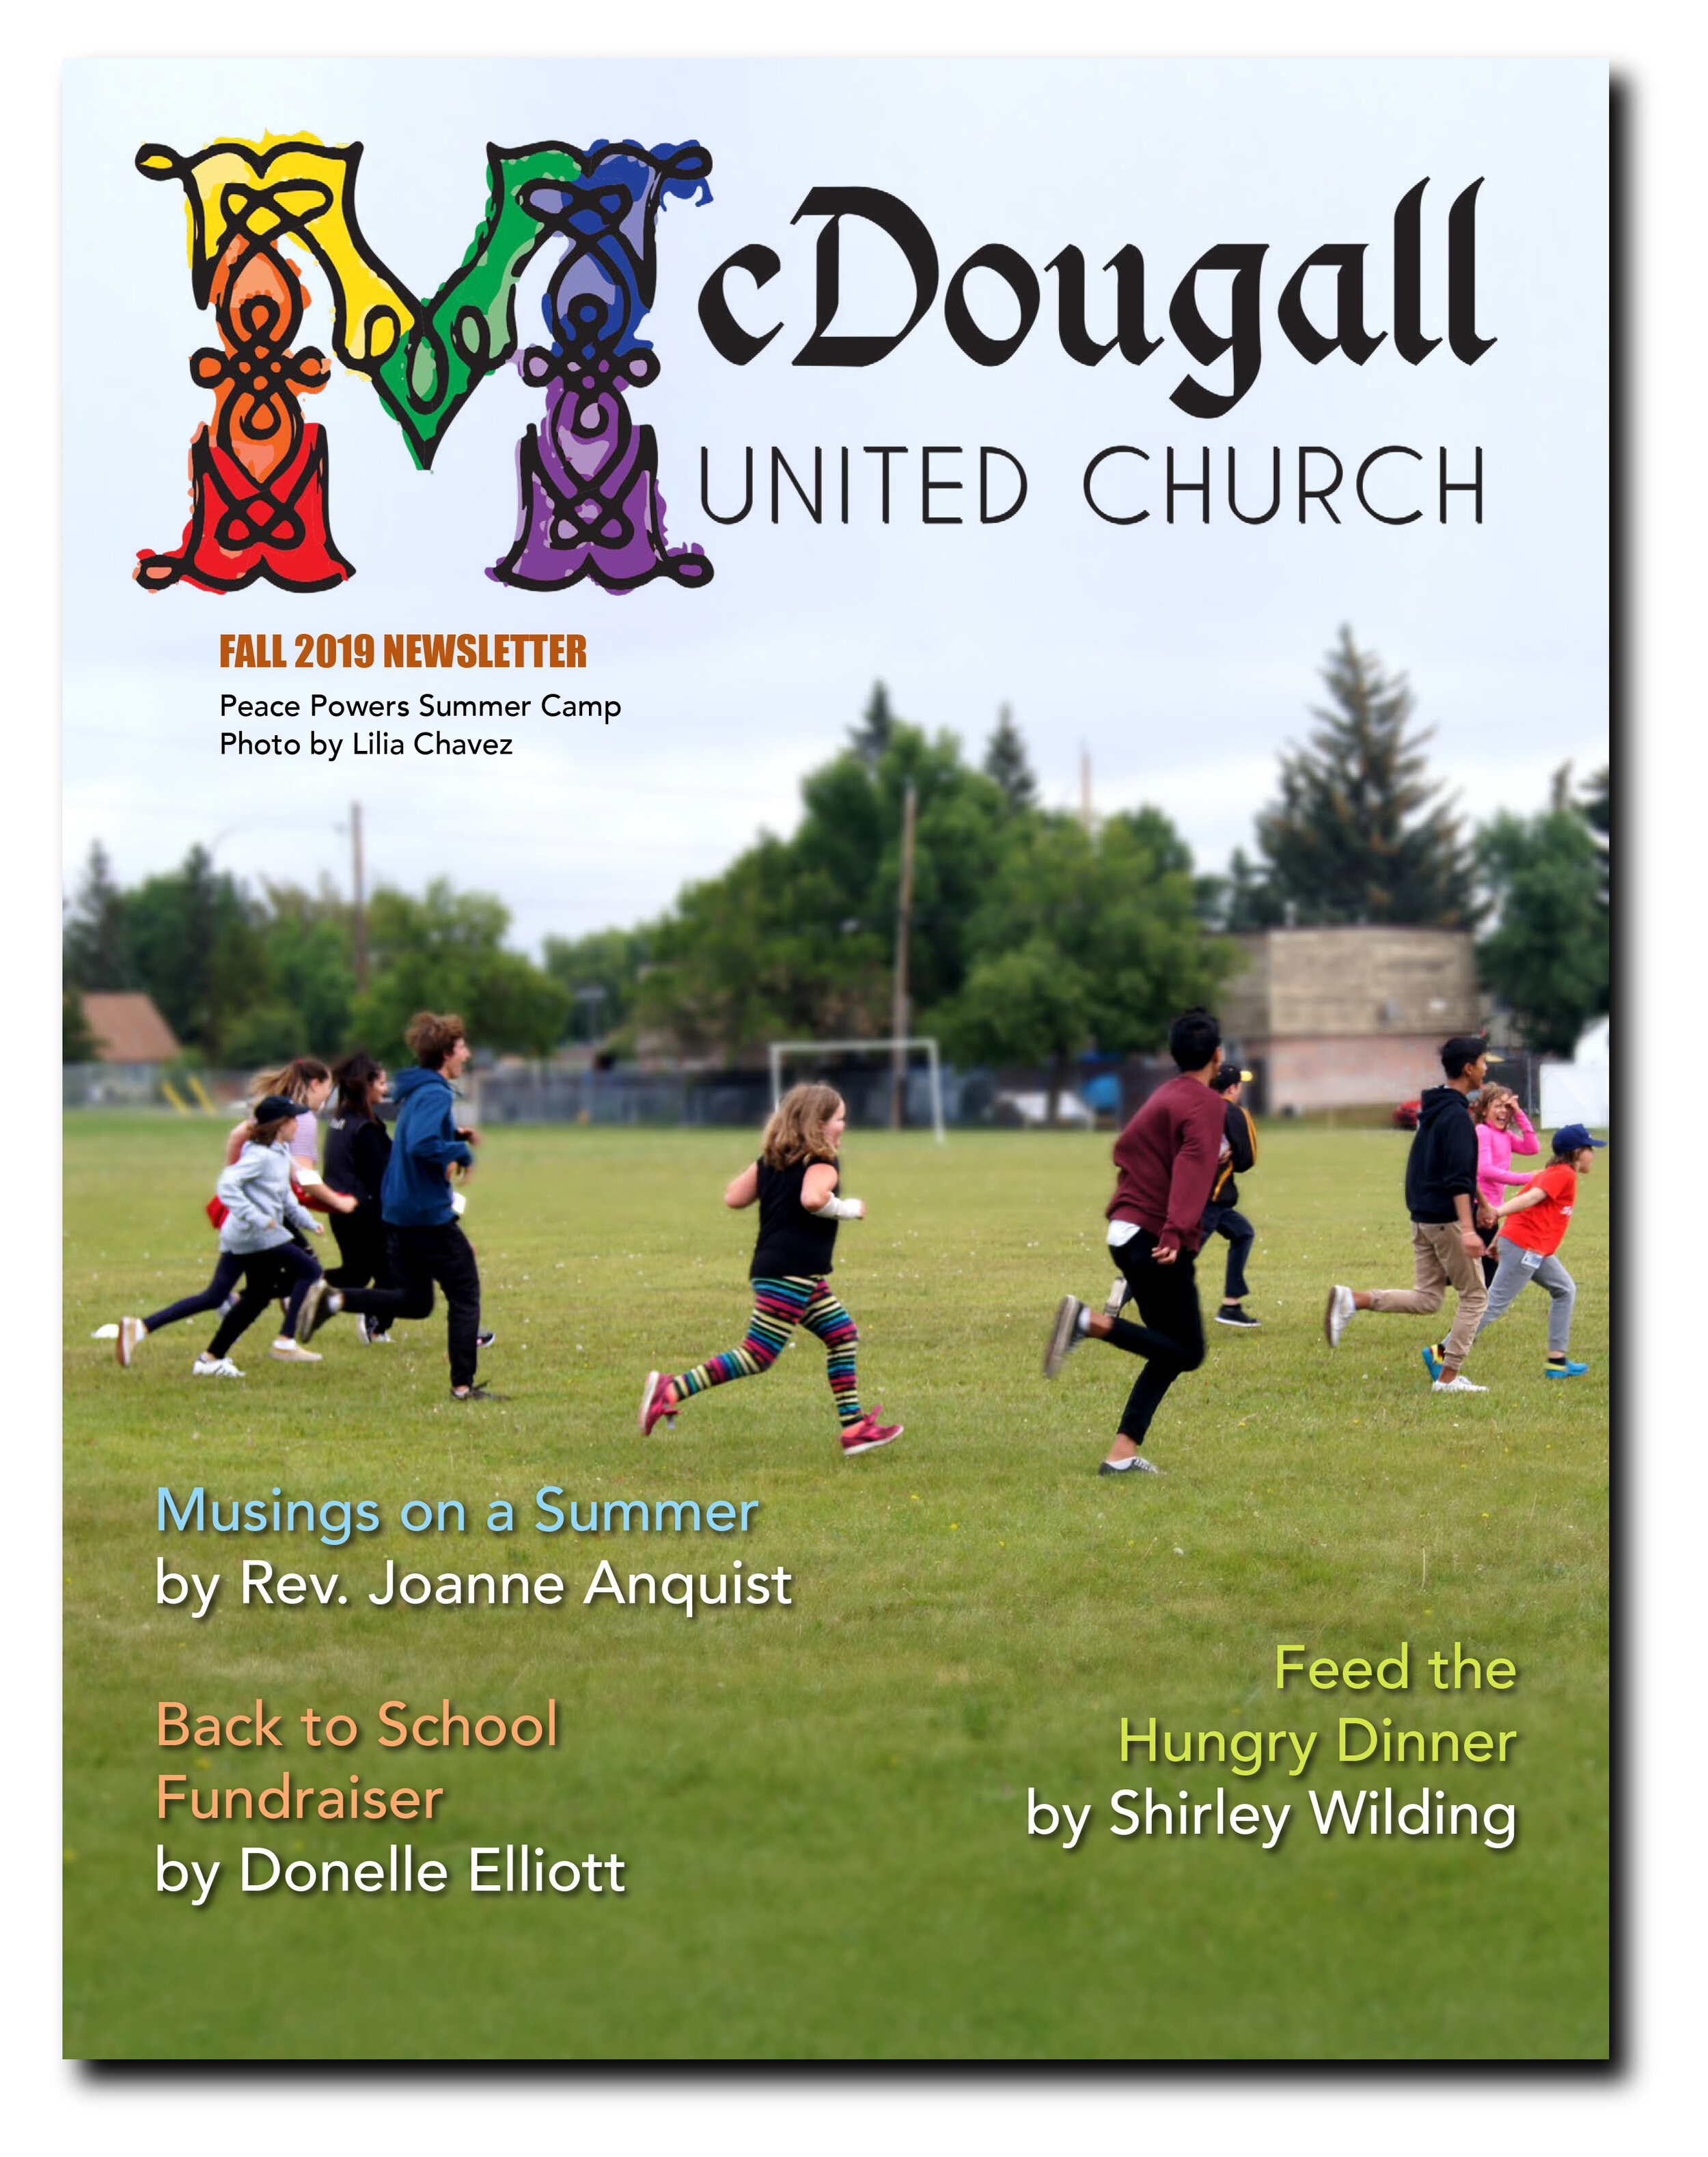 Download the Fall Newsletter here… - CLICK HERE to download the latest McDougall Newsletter.